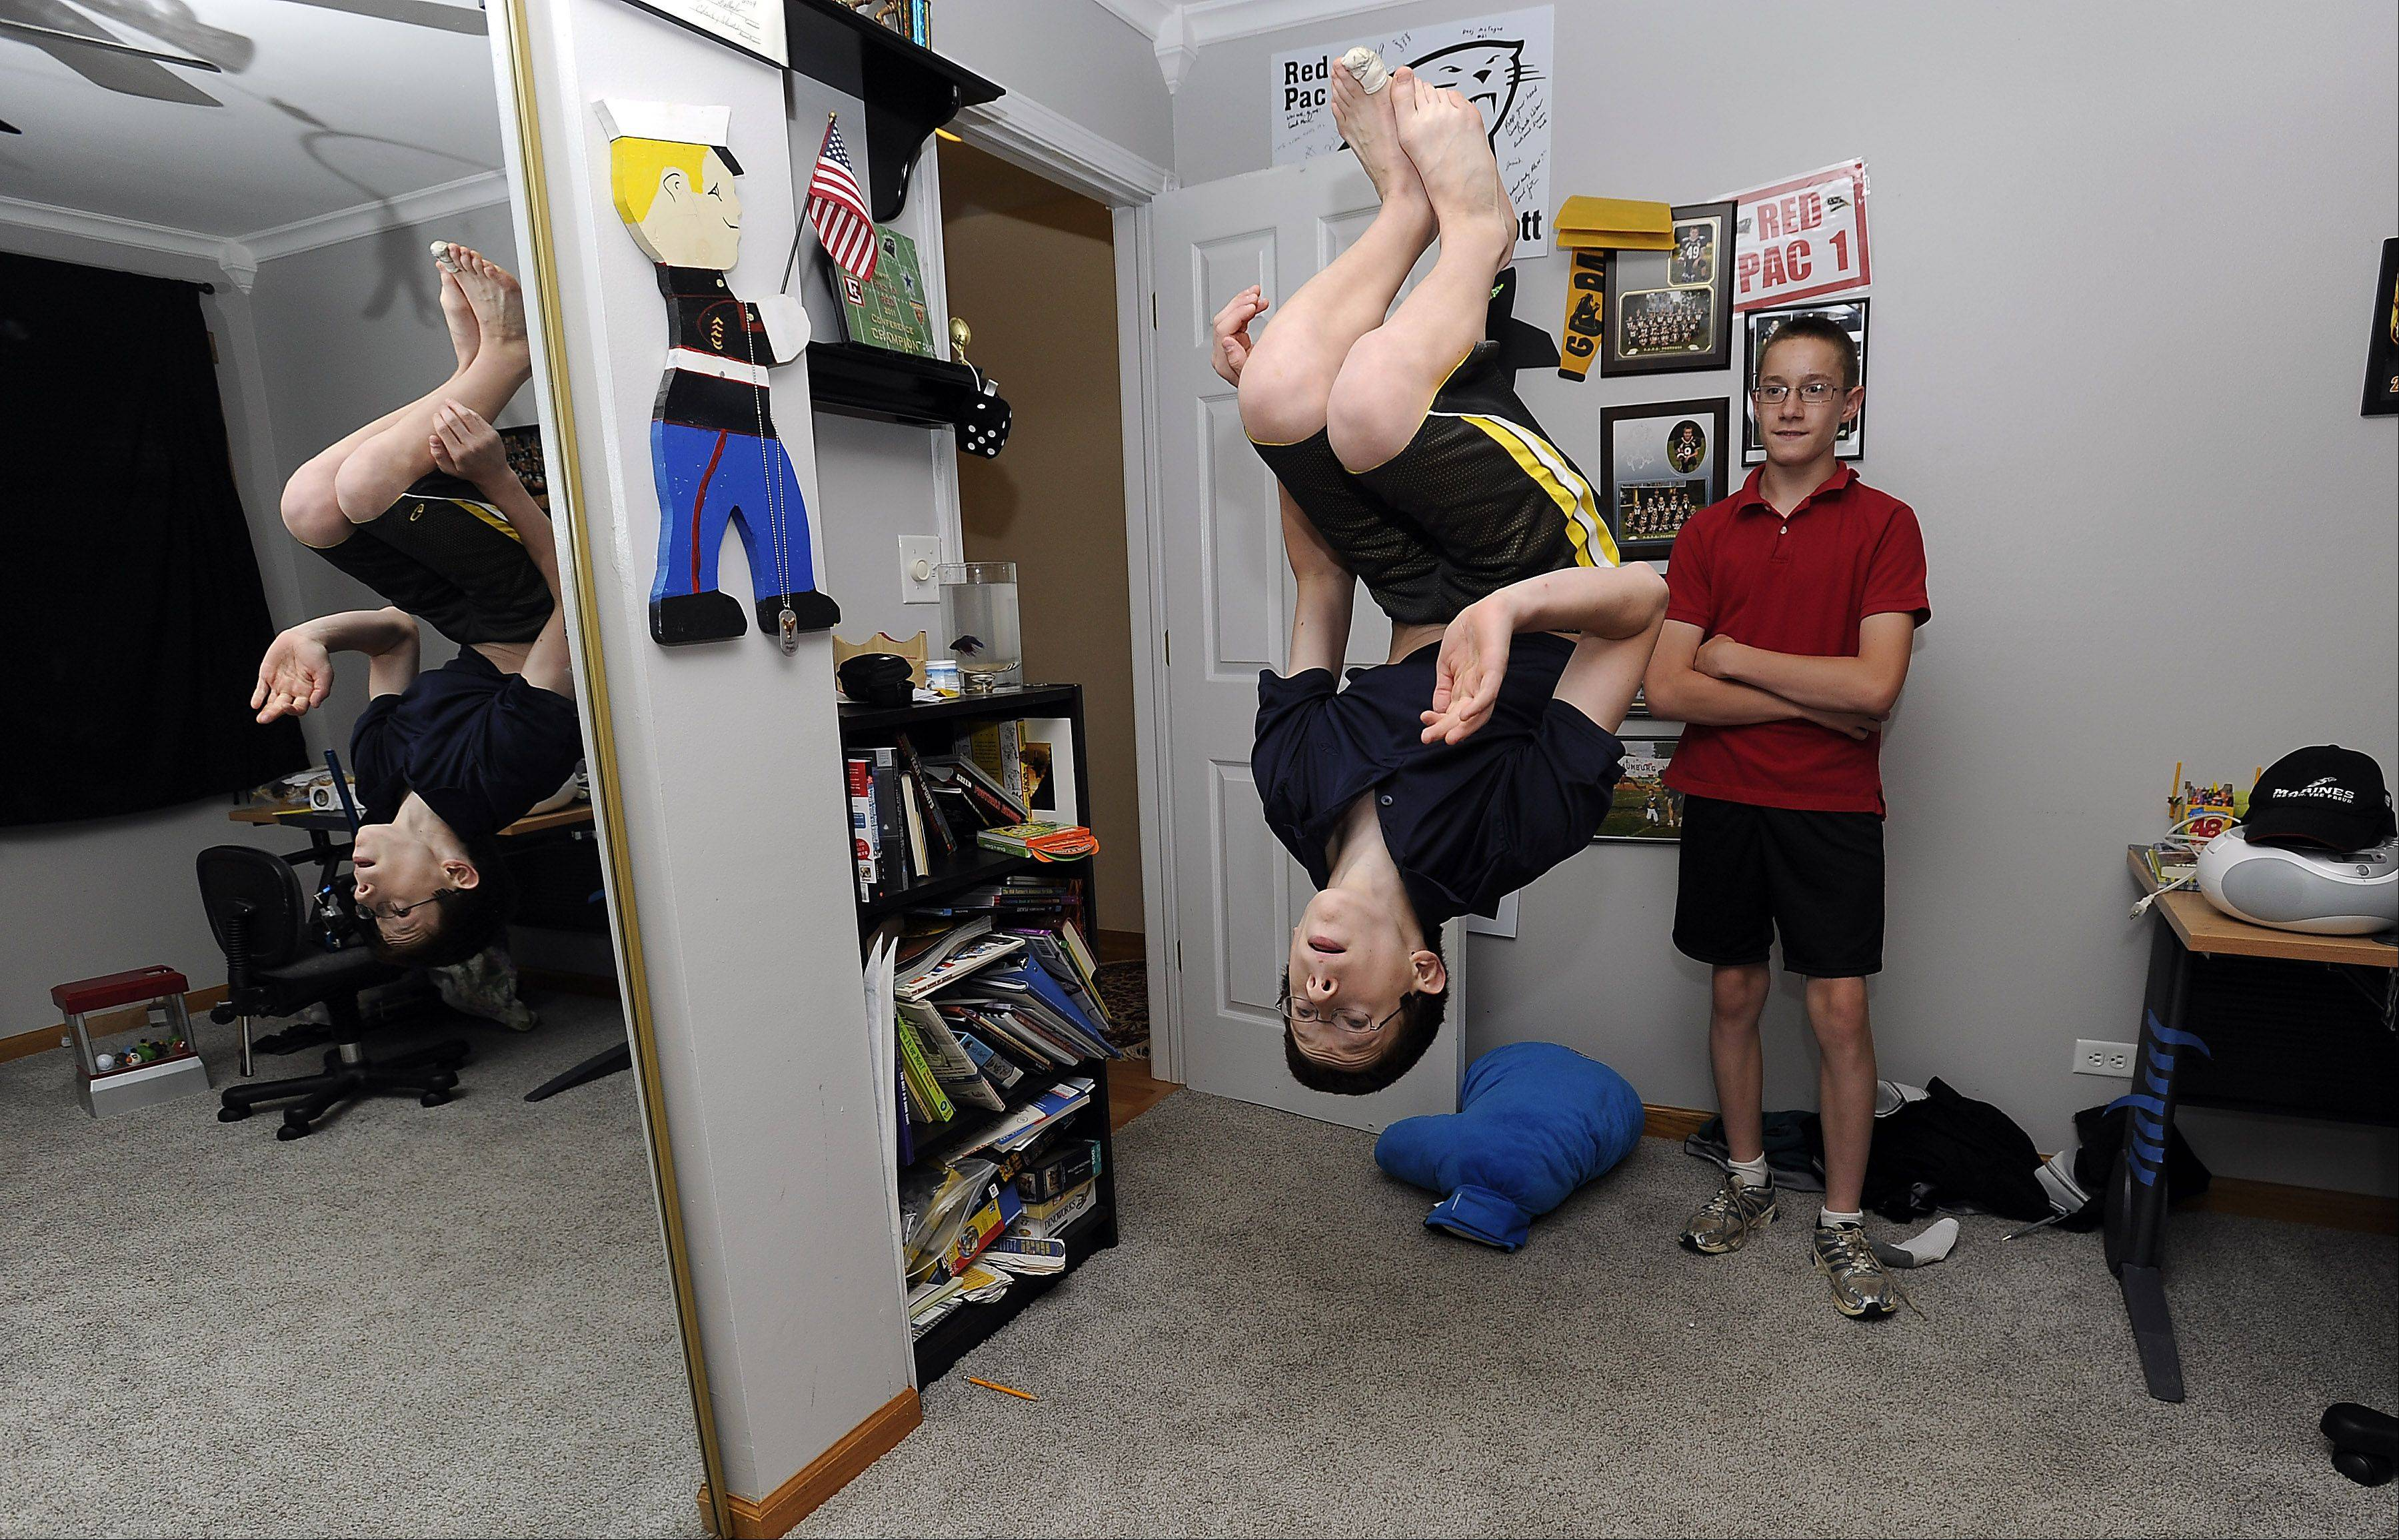 Jack McDermott shows his brother Matt, both 13, his latest gymnastics move in their Hoffman Estates home. The boy' parents are taking them back to their native Russia this summer to help them learn about their culture and history.